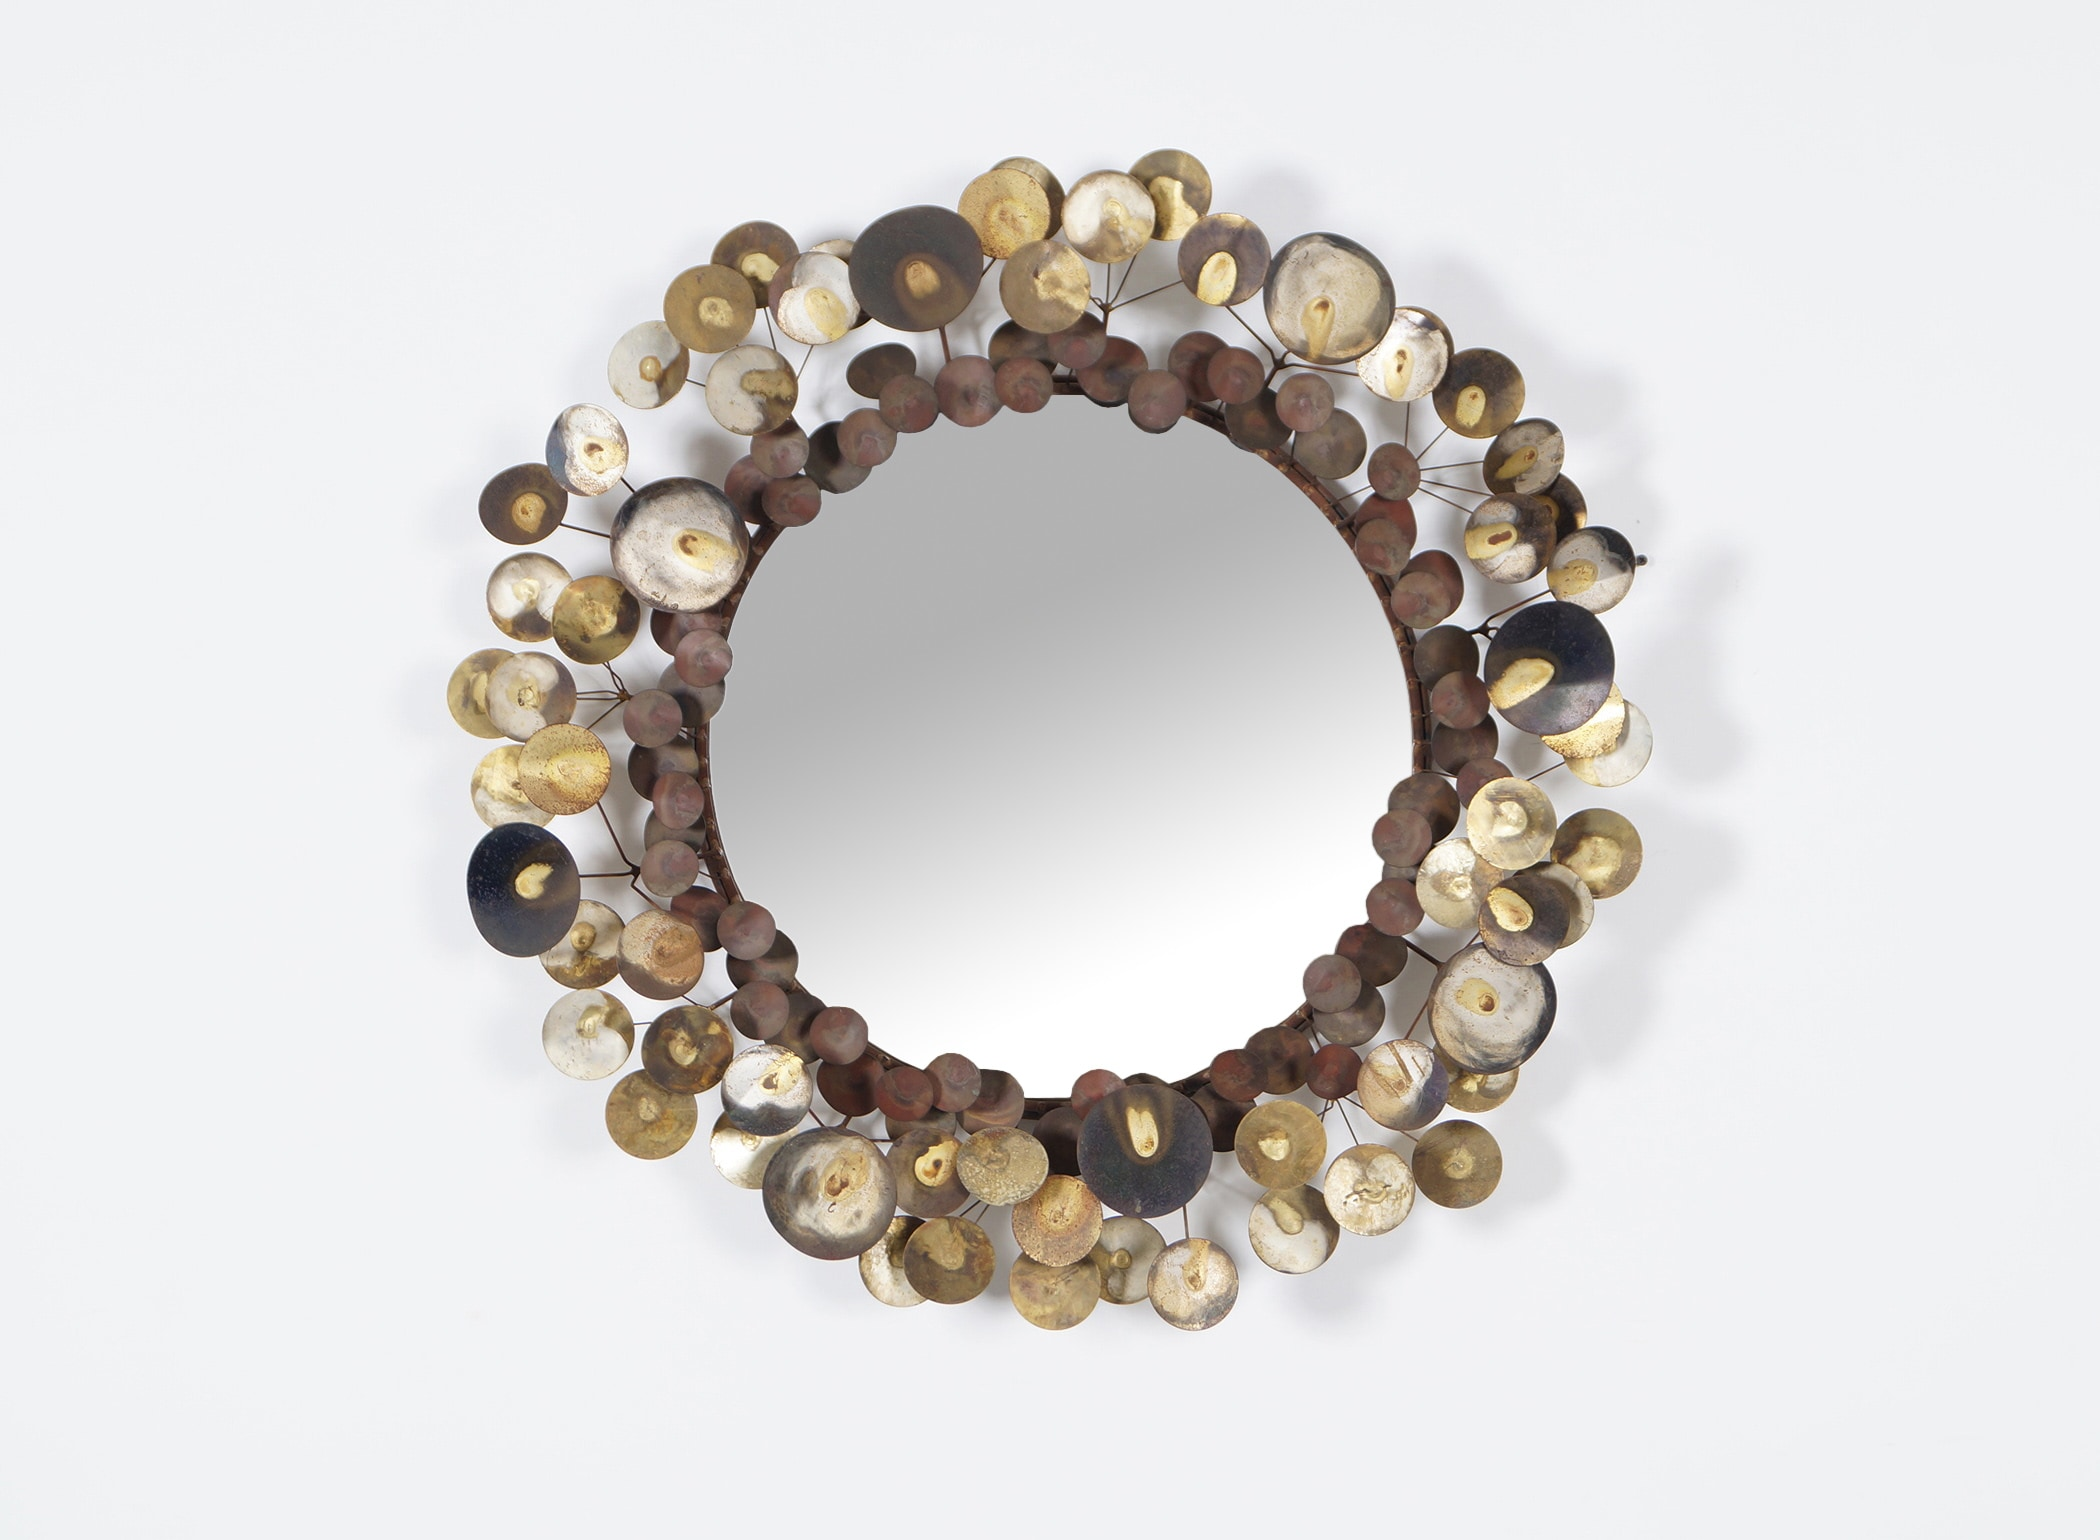 Vintage Raindrops Wall Mirror by Curtis Jere